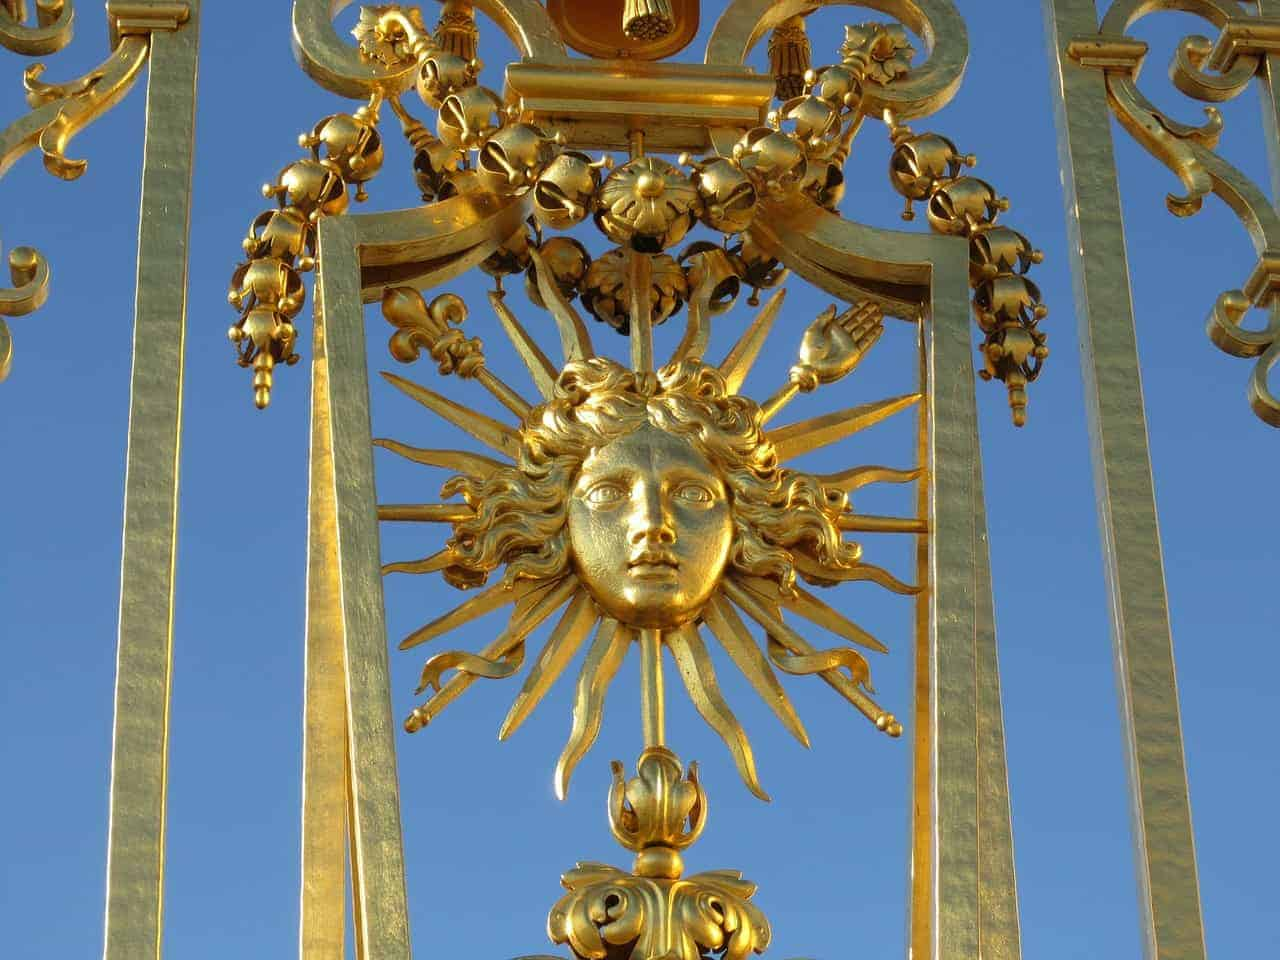 The golden entrance gates of the Palace of Versailles